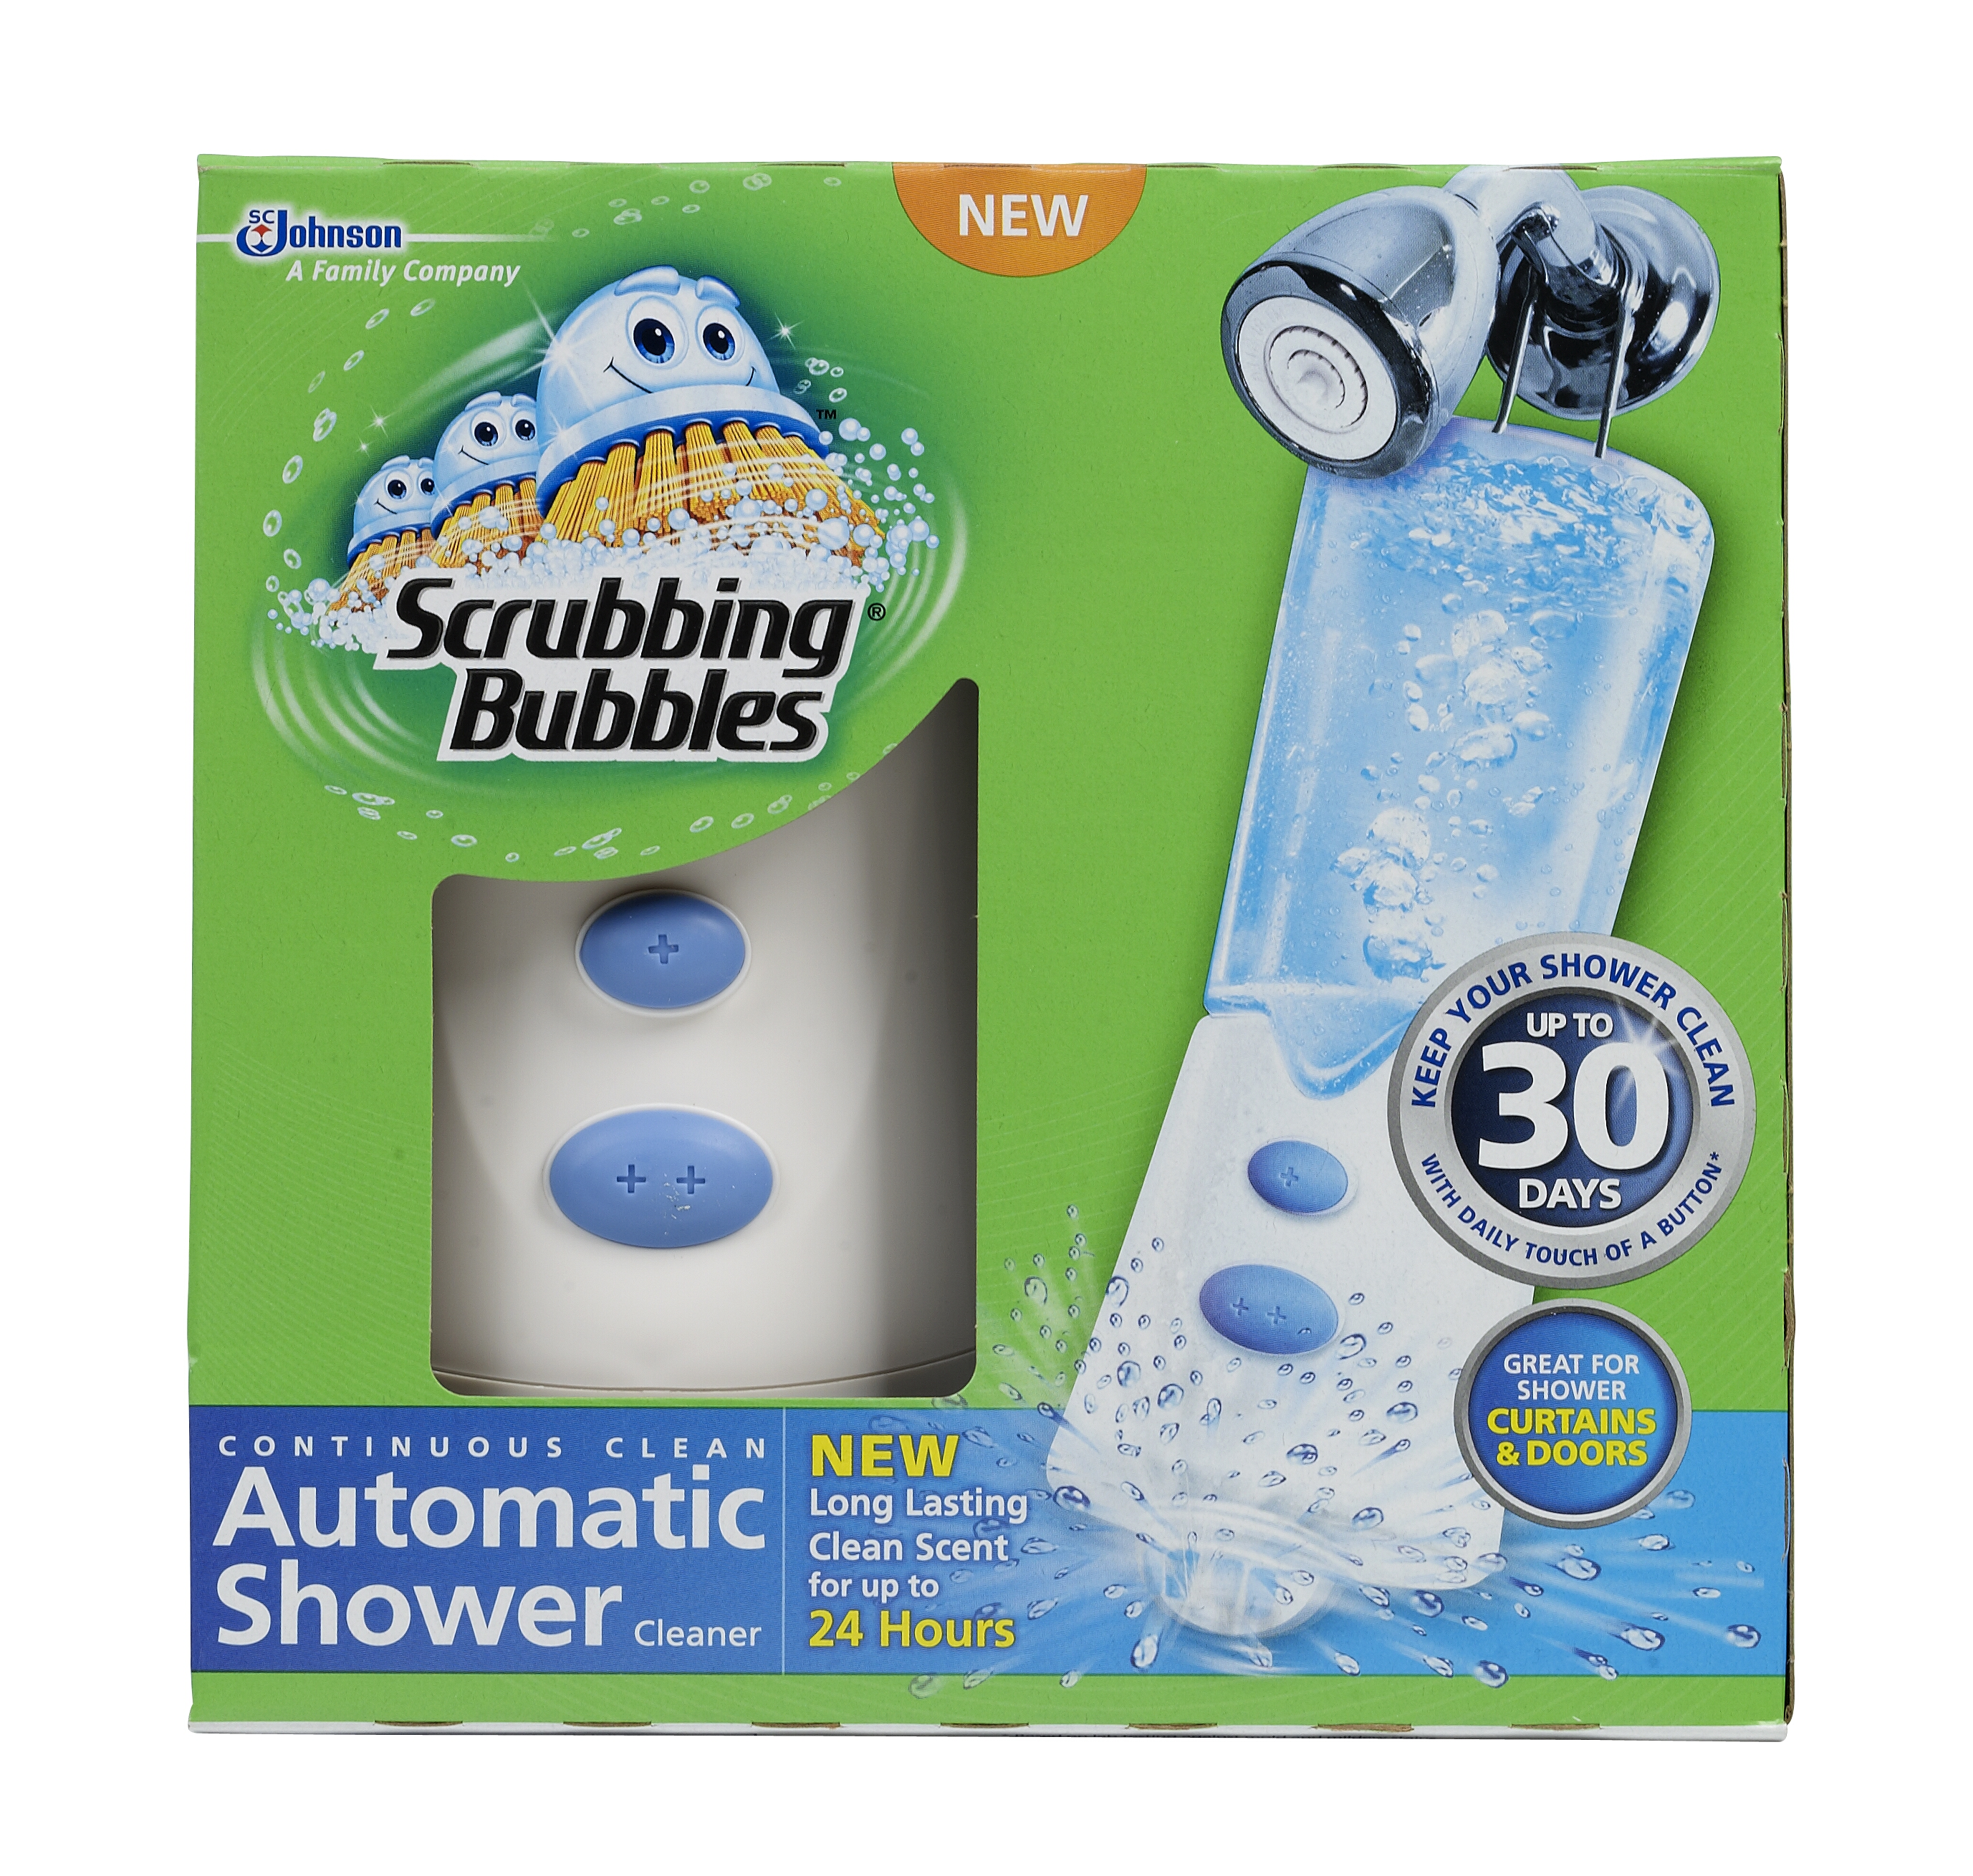 Scrubbing Bubbles Automatic Shower Cleaner, 70164, Front (no background)